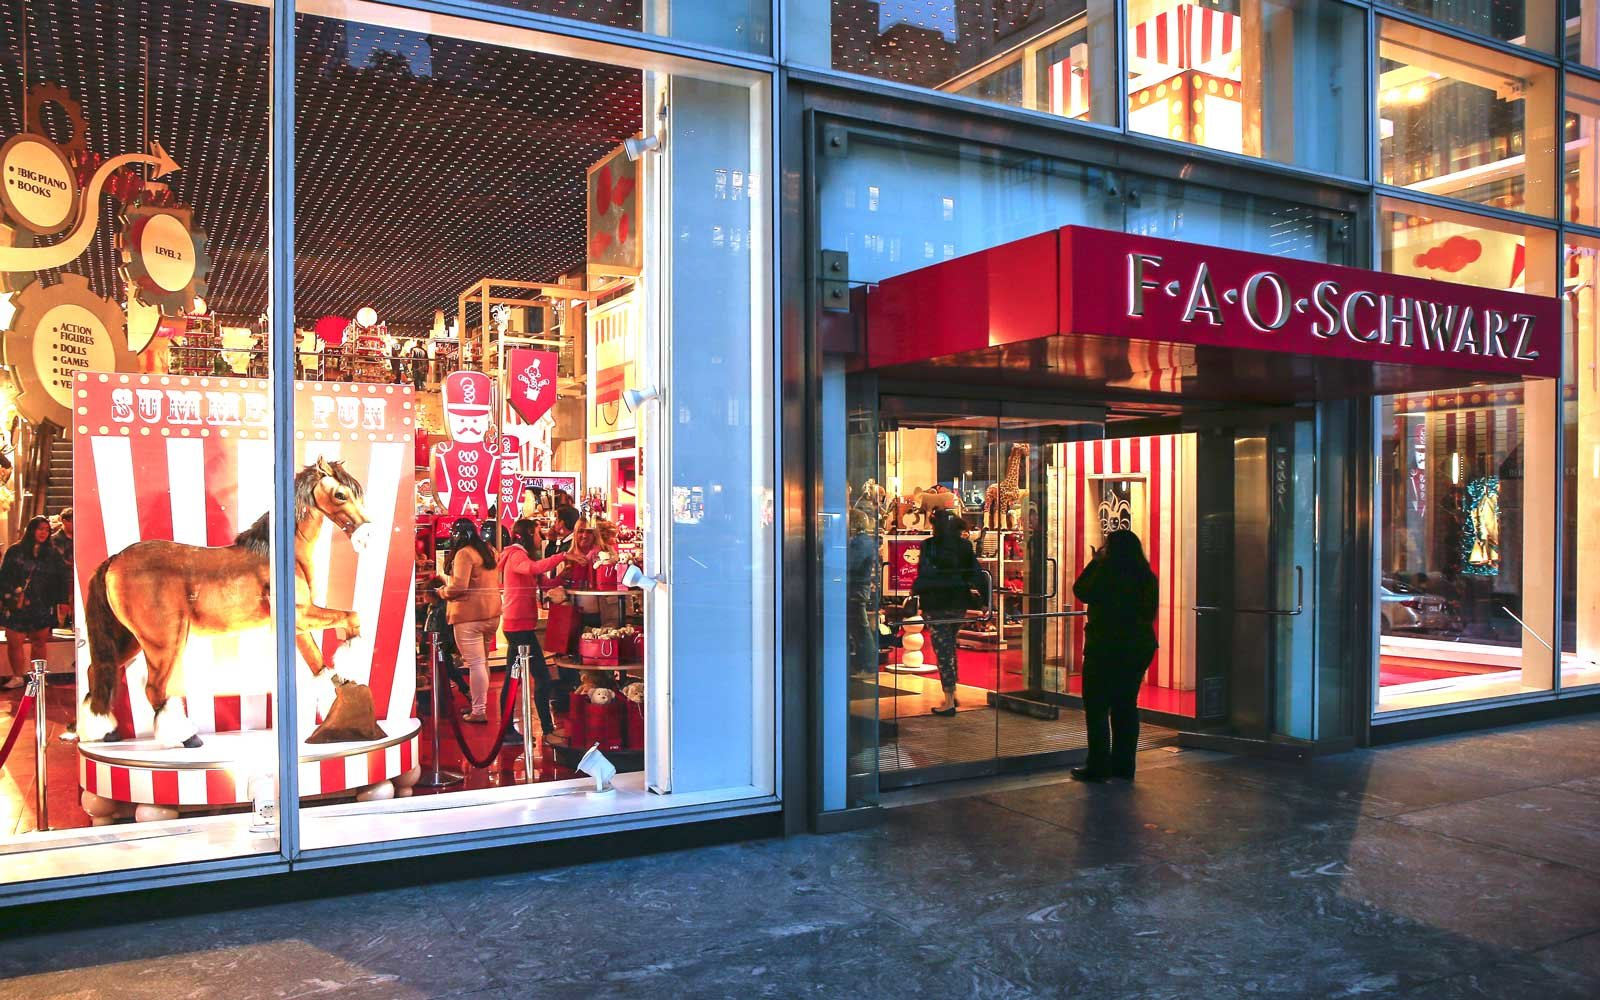 FAO Schwarz toy store in New York